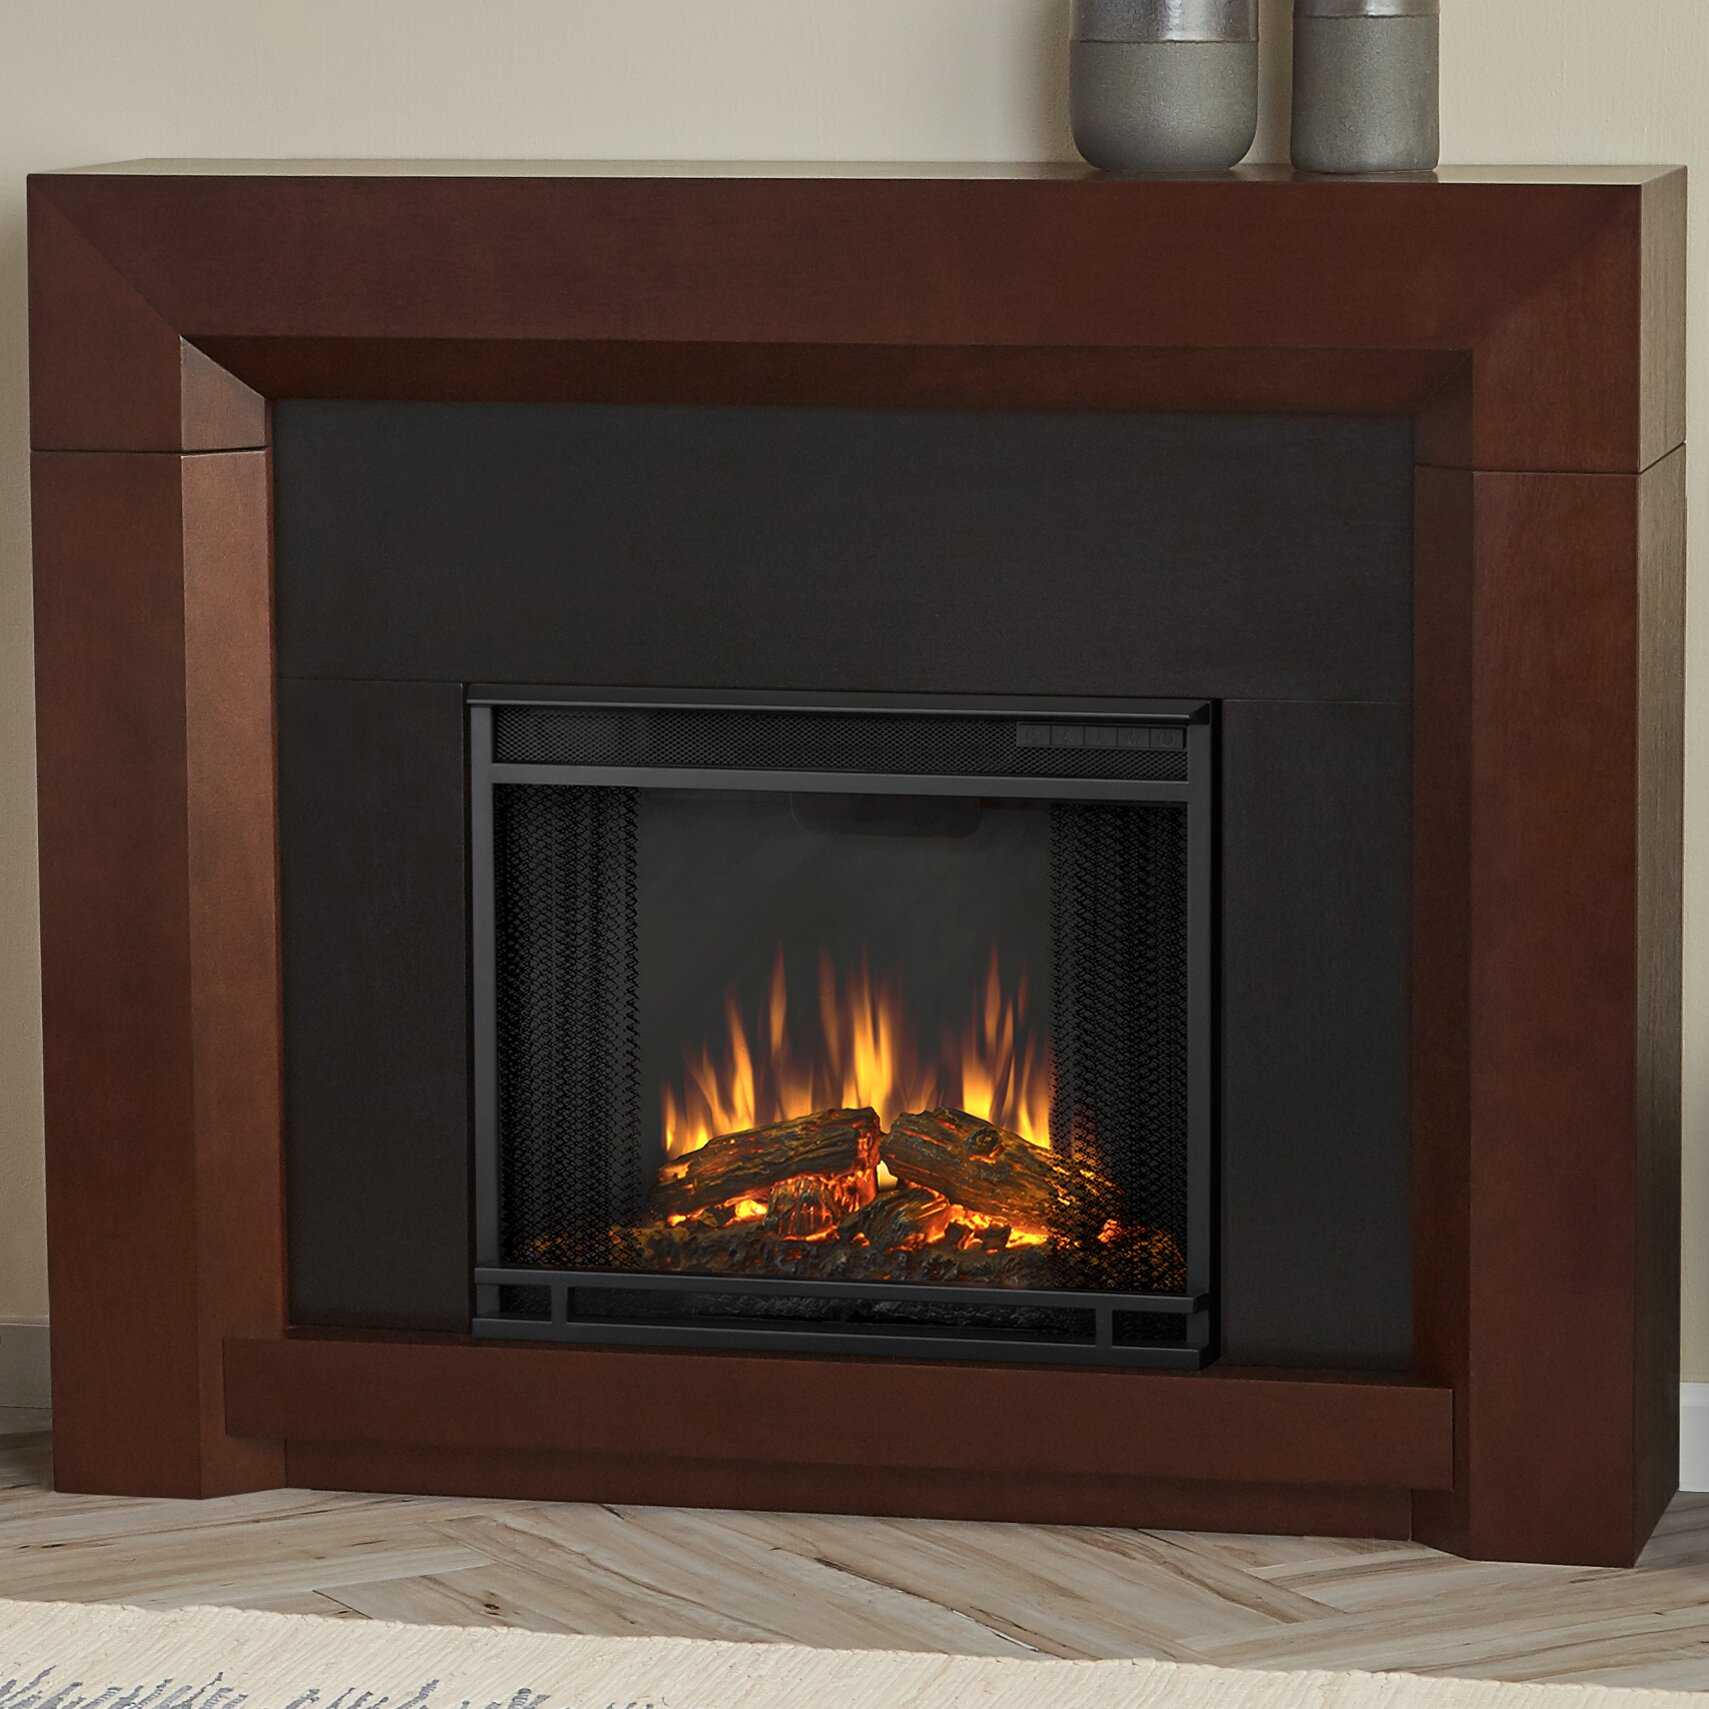 100 Real Flame Electric Fireplace Big Deal On Real Flame